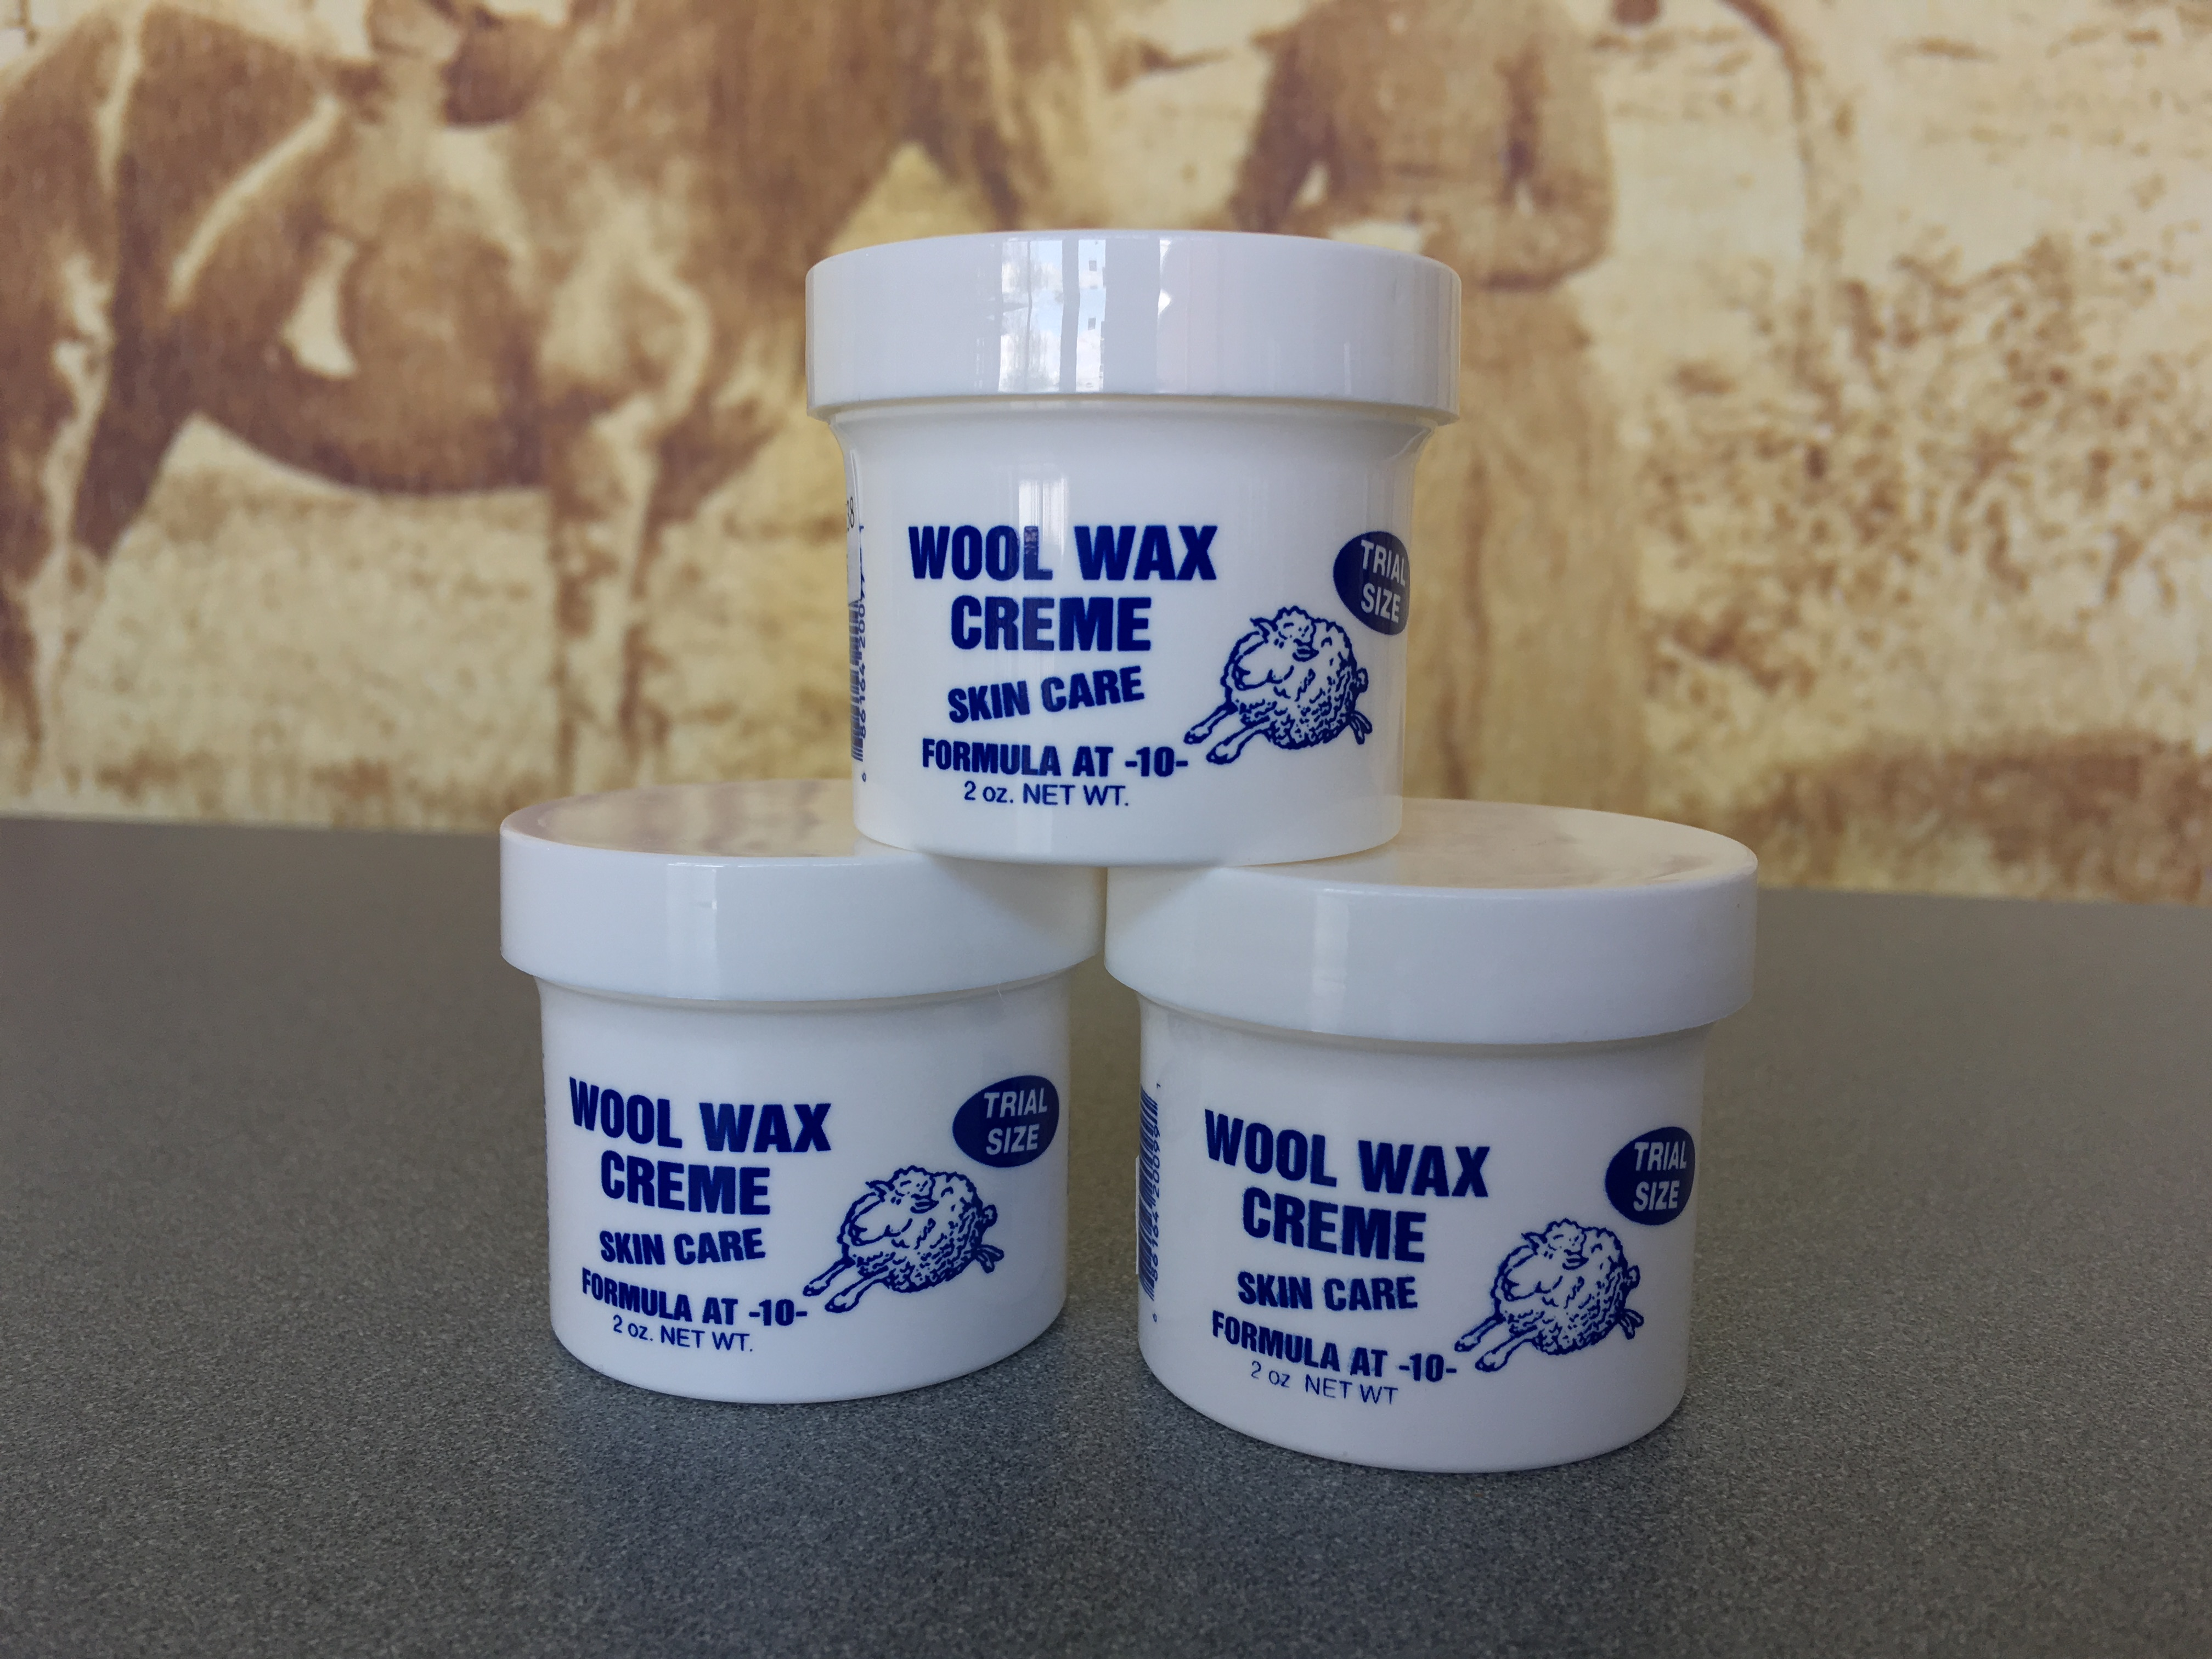 Wool Wax Creme - 2oz. Jar